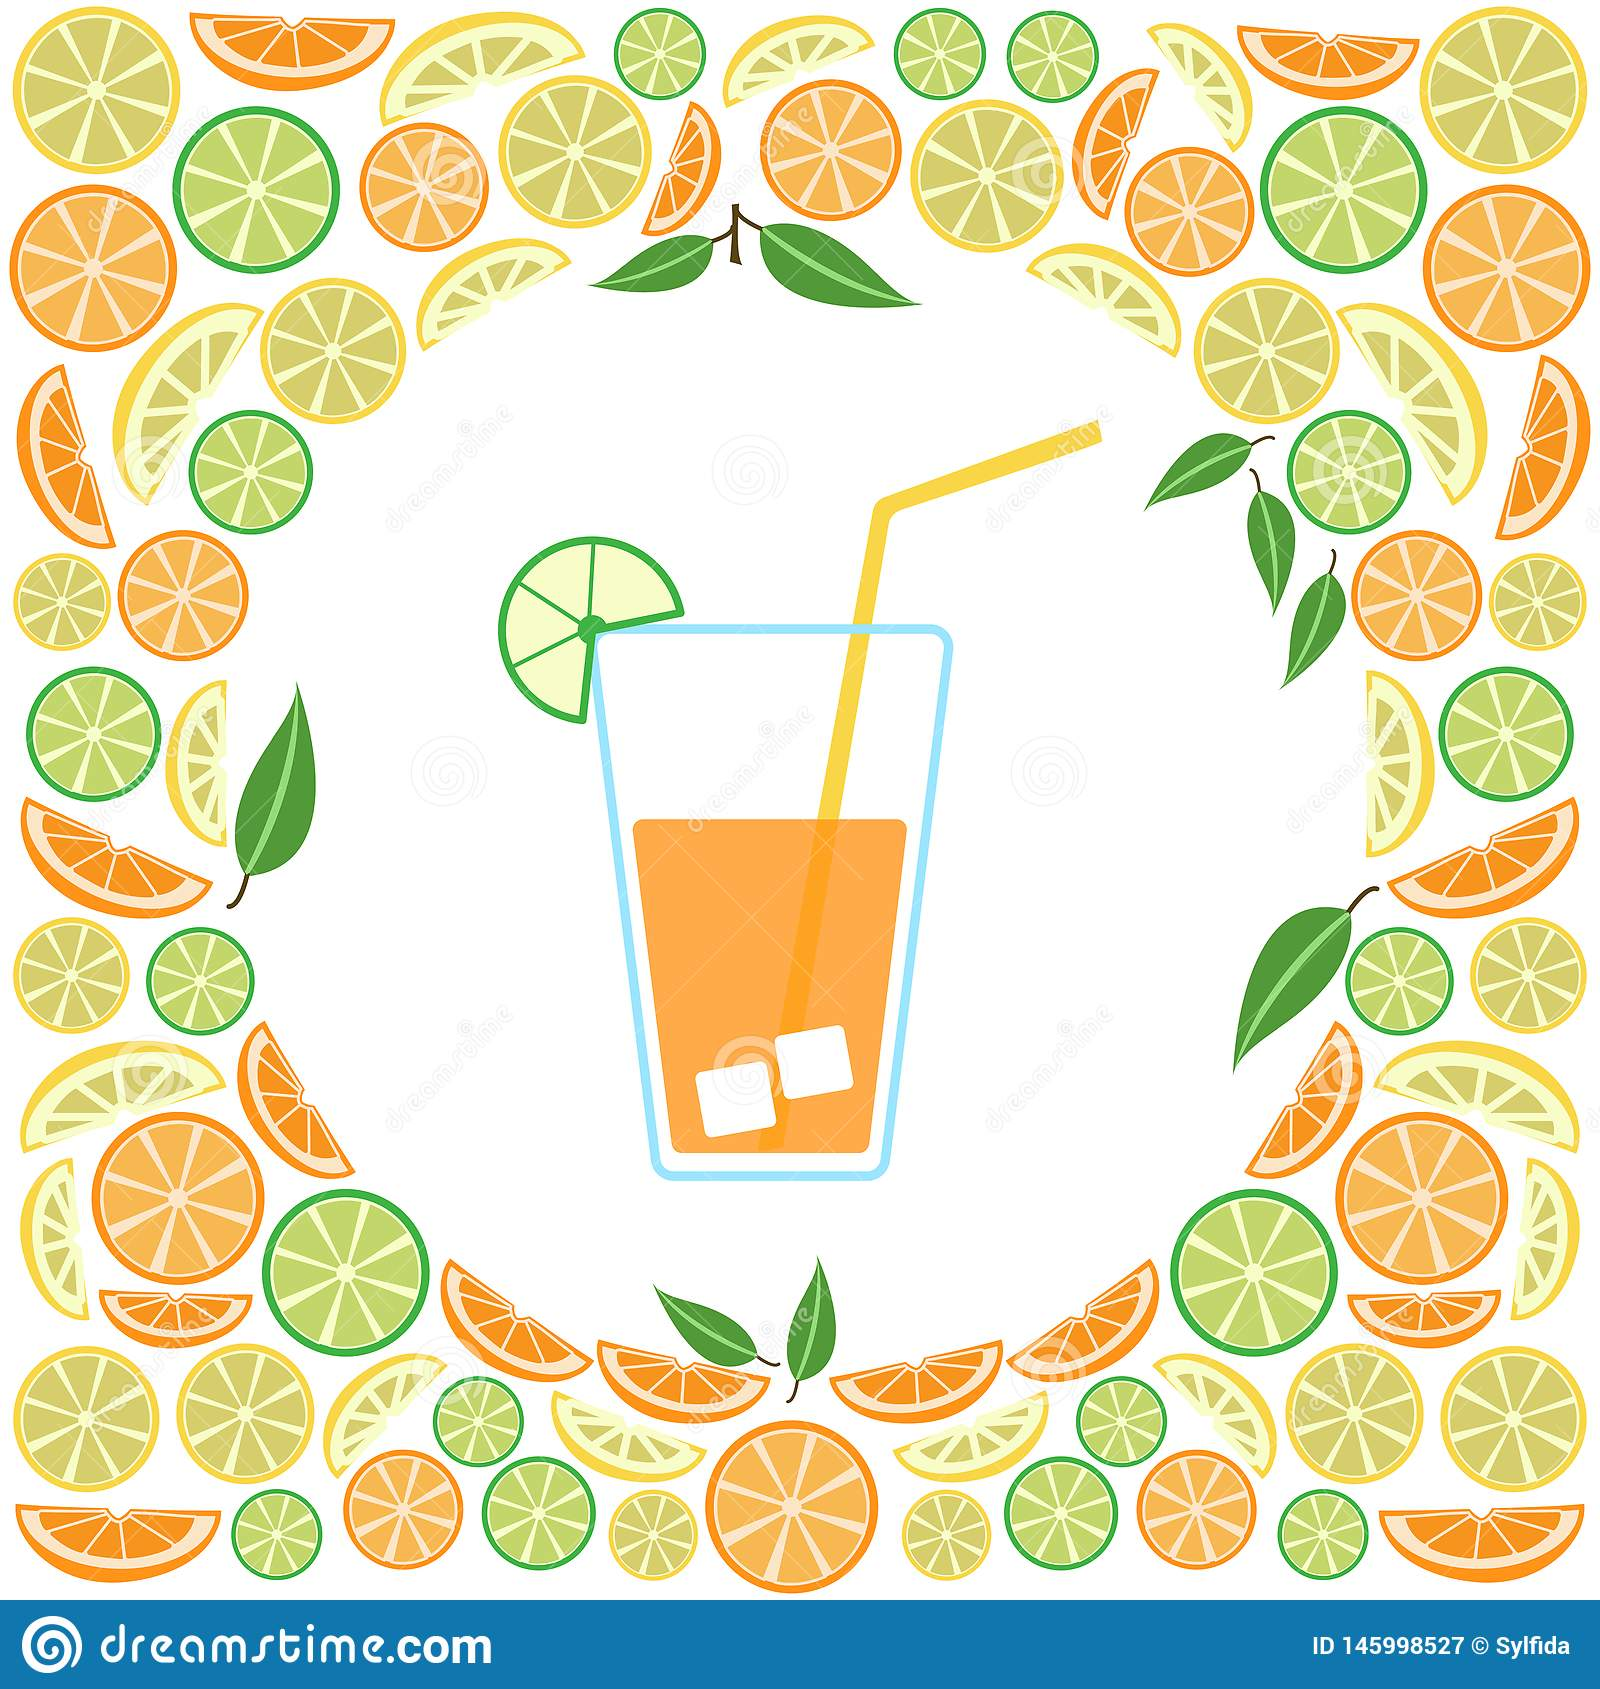 Colored glass of juice on a citrus background, vector